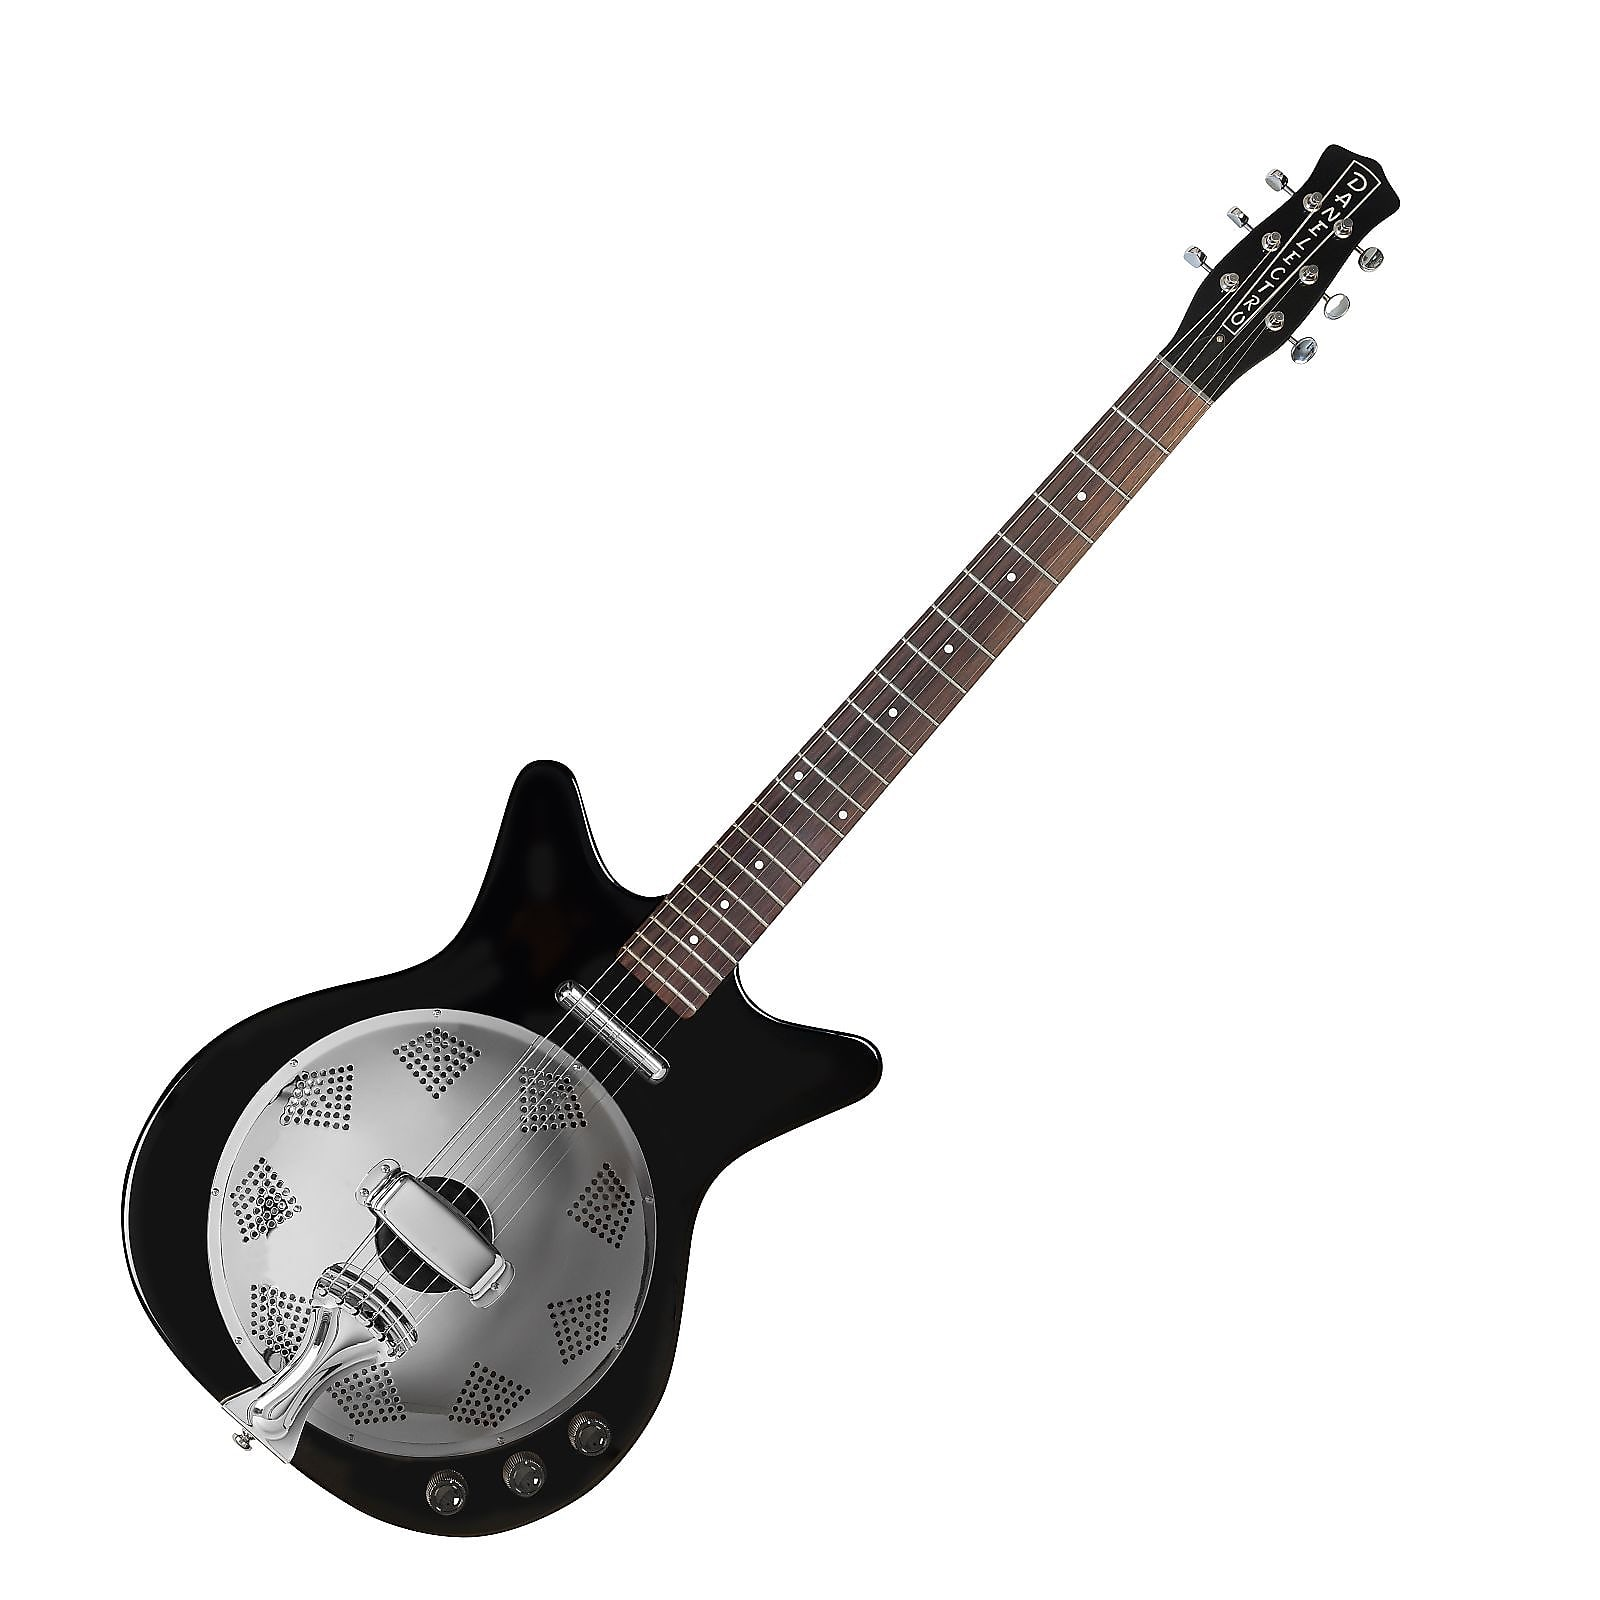 Danelectro '59 Resonator - Black